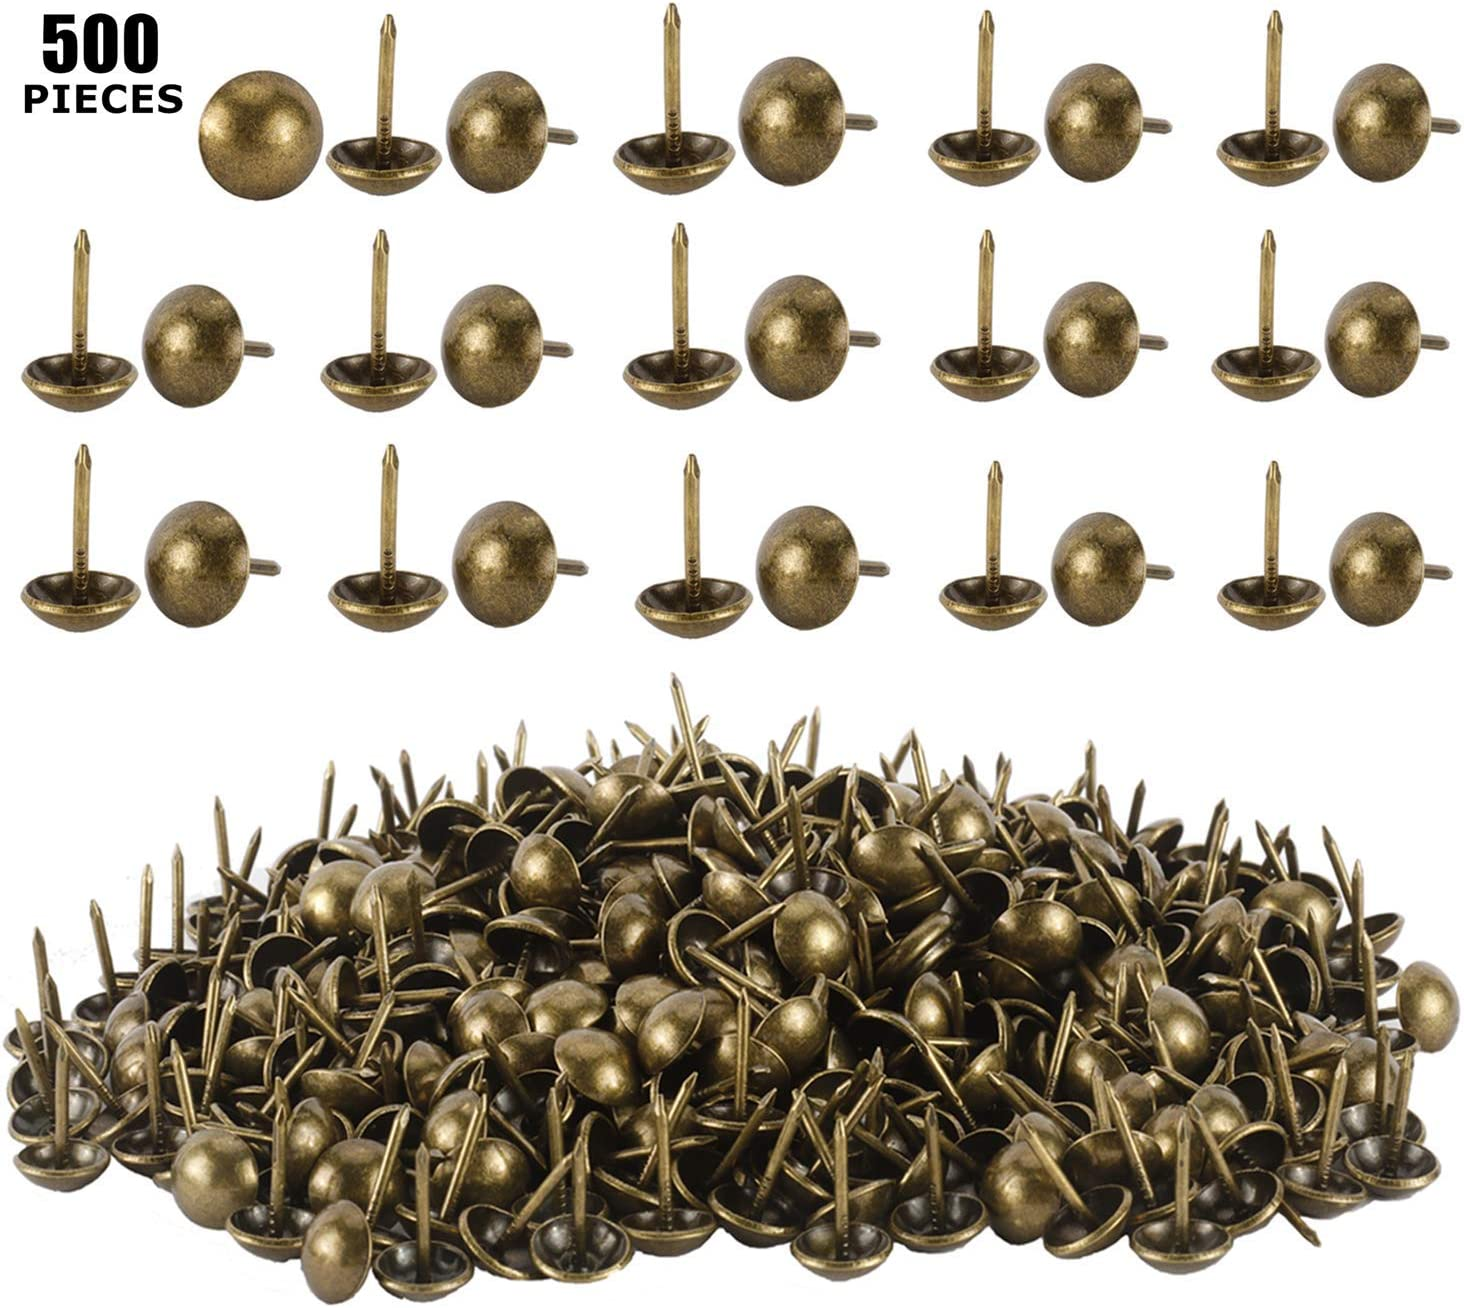 YaeCCC 500 Pcs Antique Save money Brass Finish Gifts Furniture Upholstery Nails